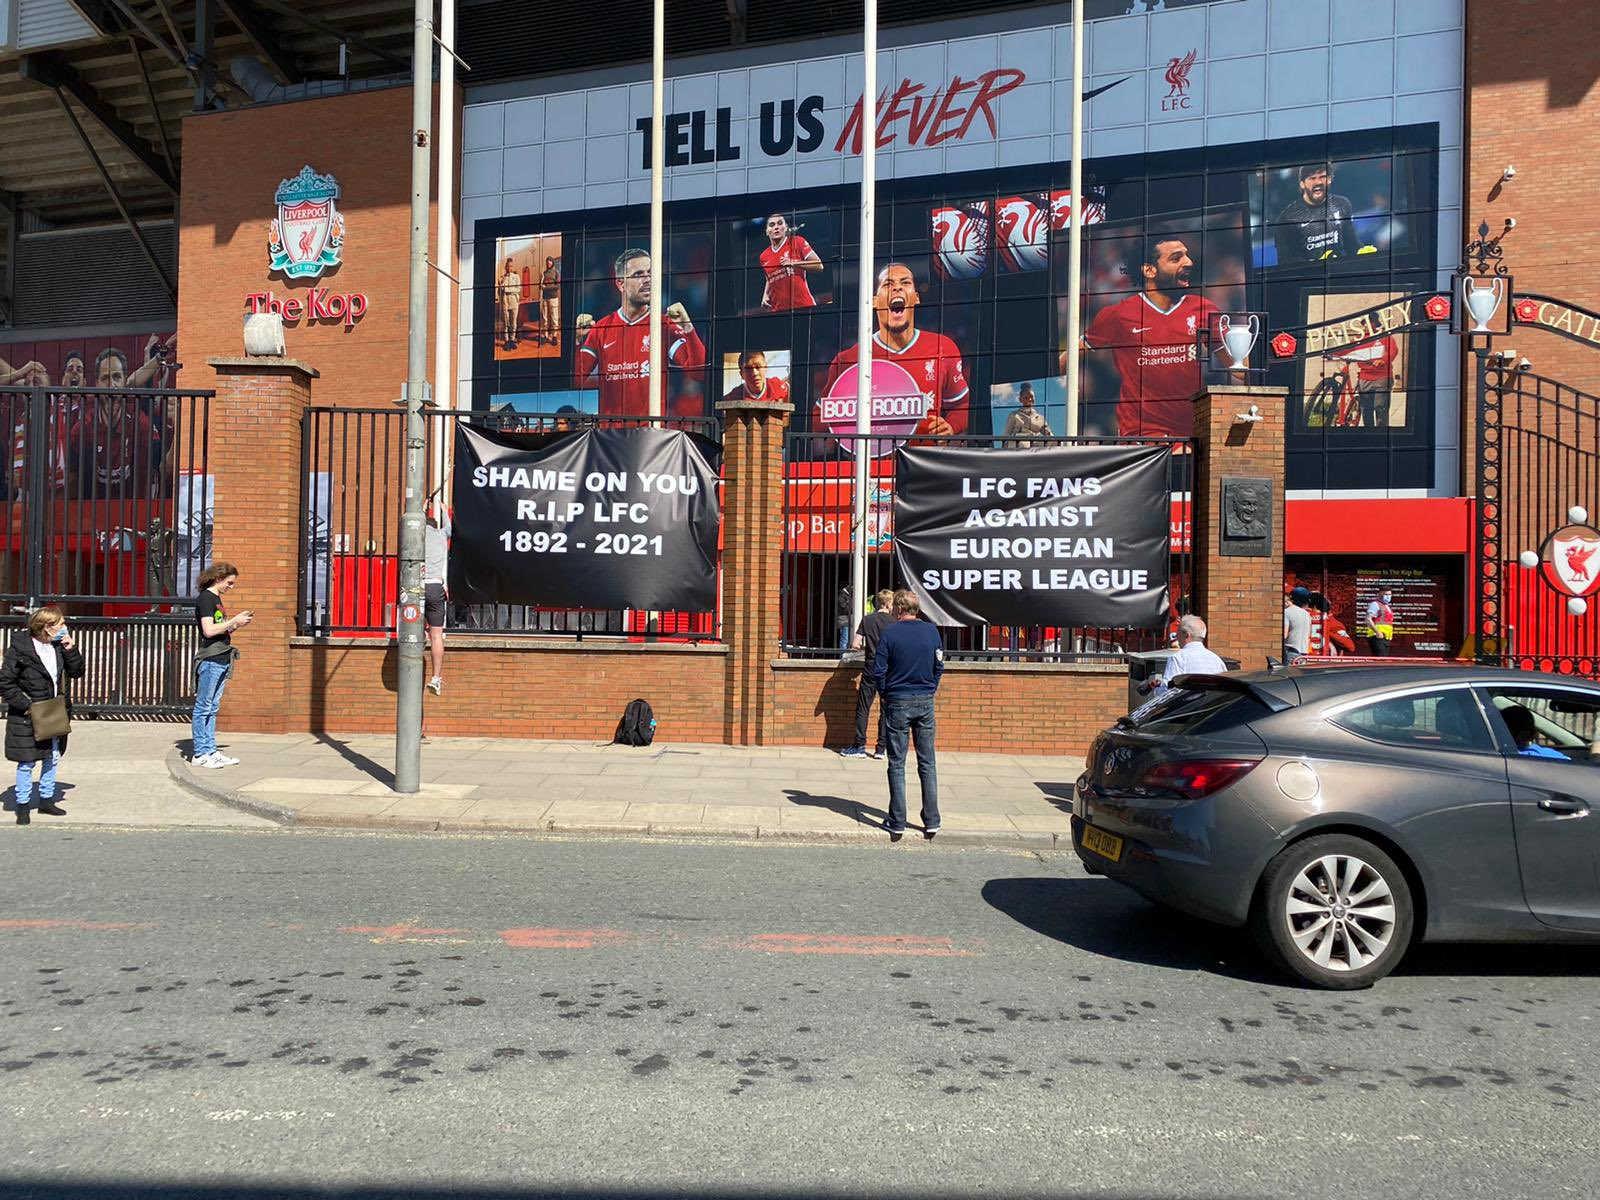 Liverpool fans protest the club's decision to join the European Super League